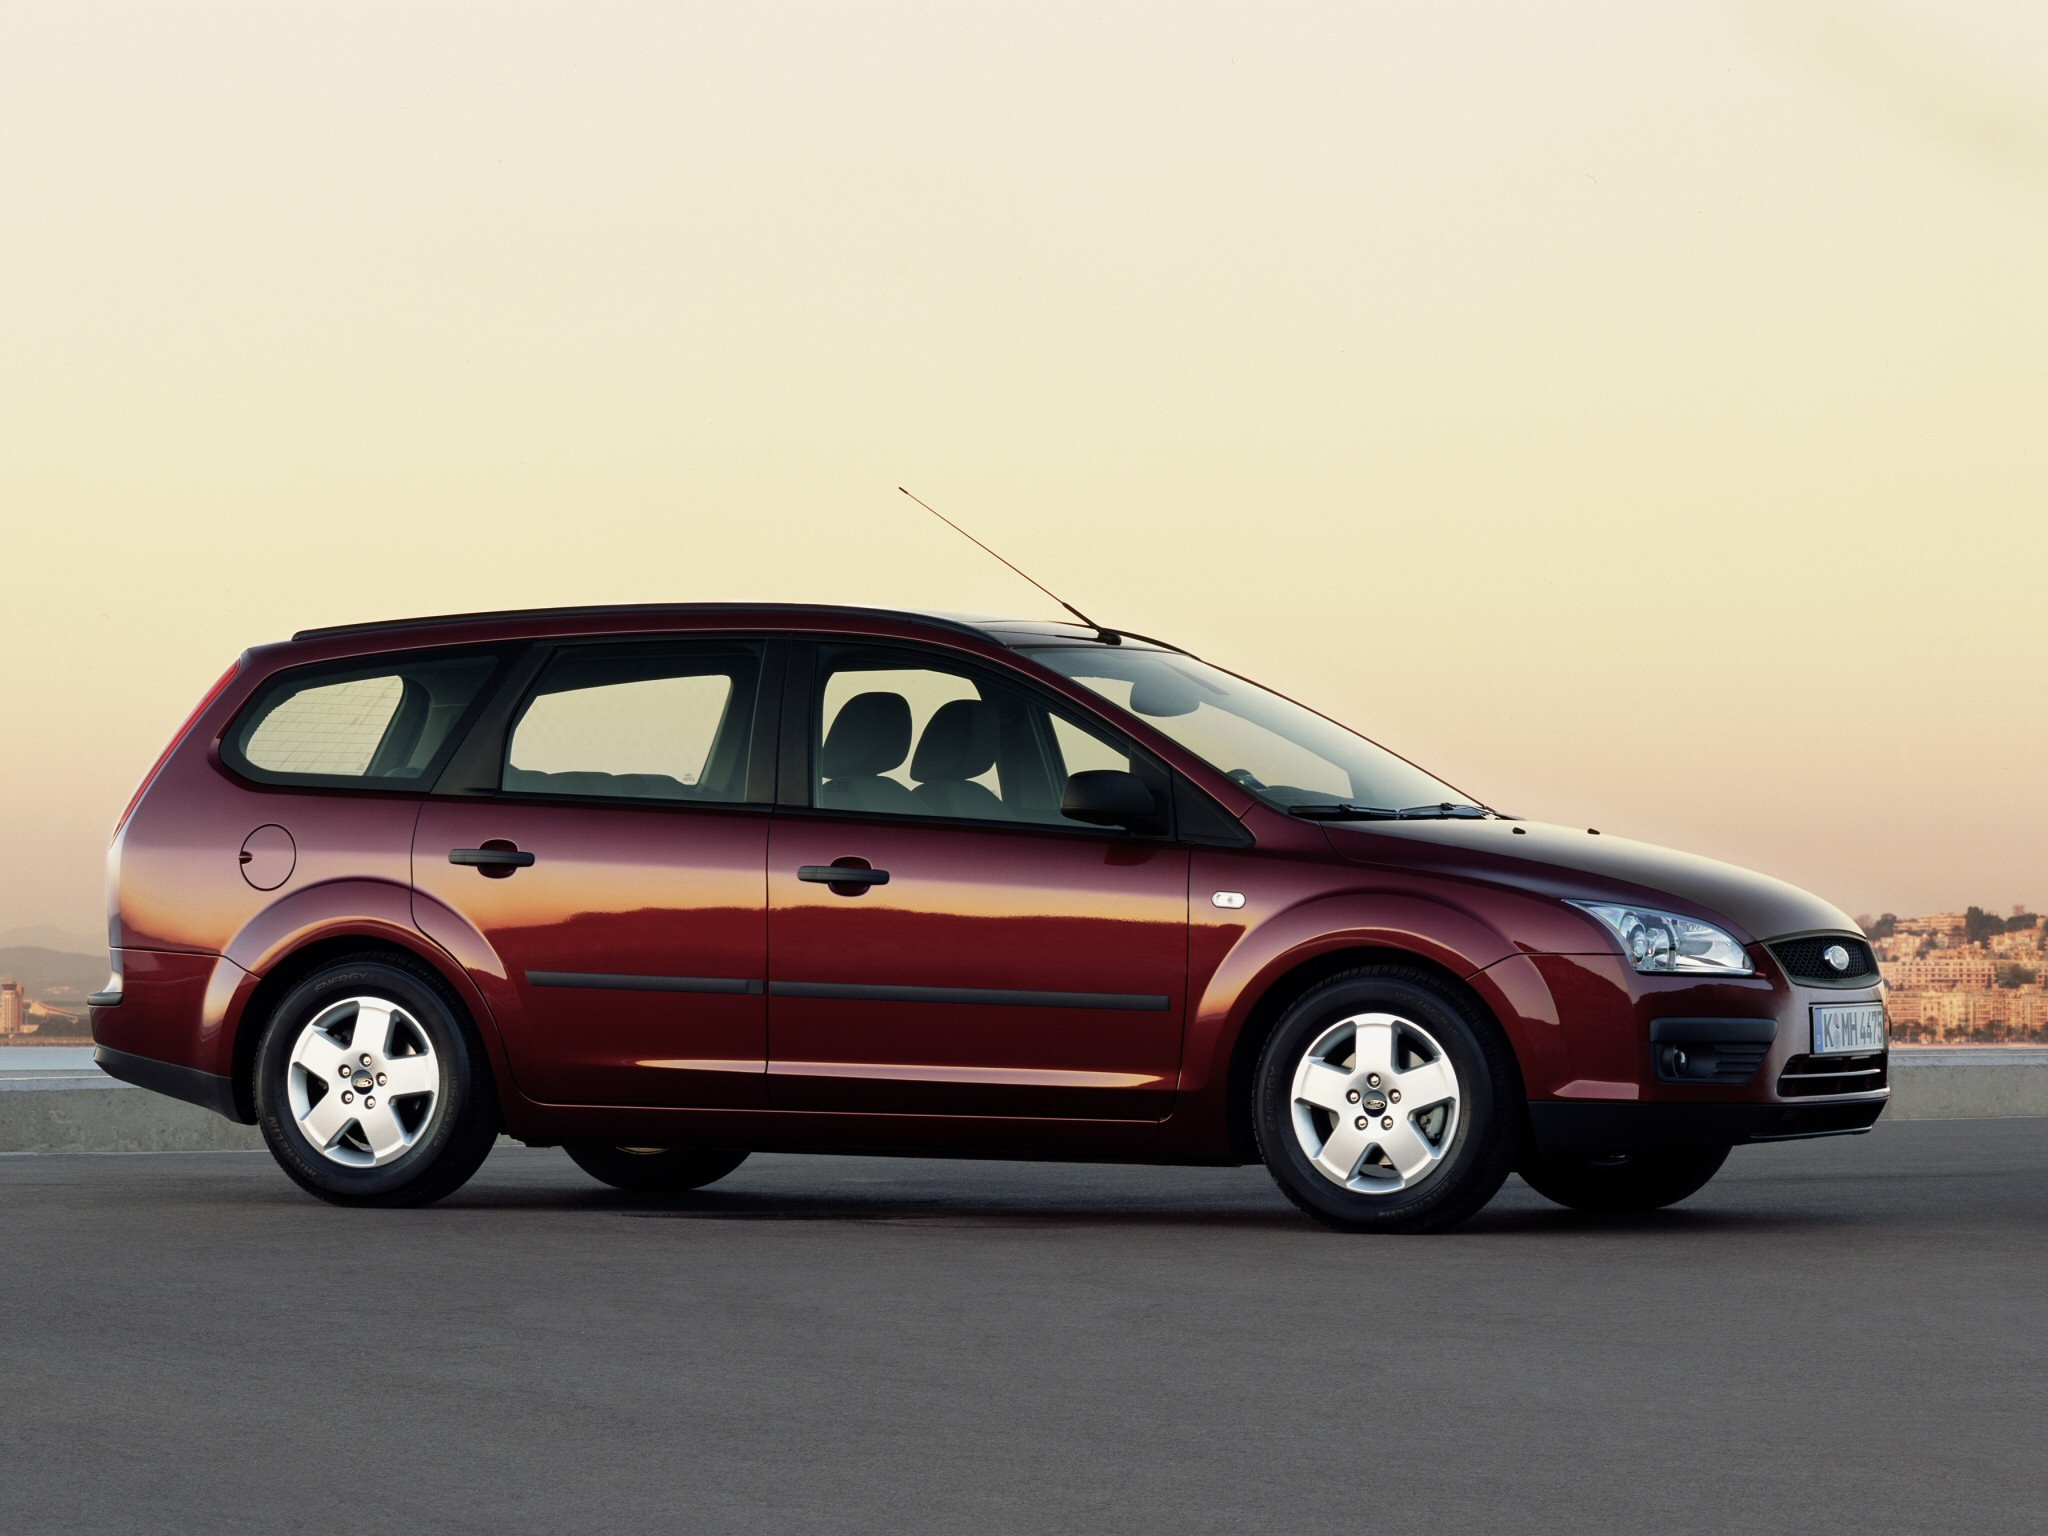 ford focus wagon ii 2005 wallpaper